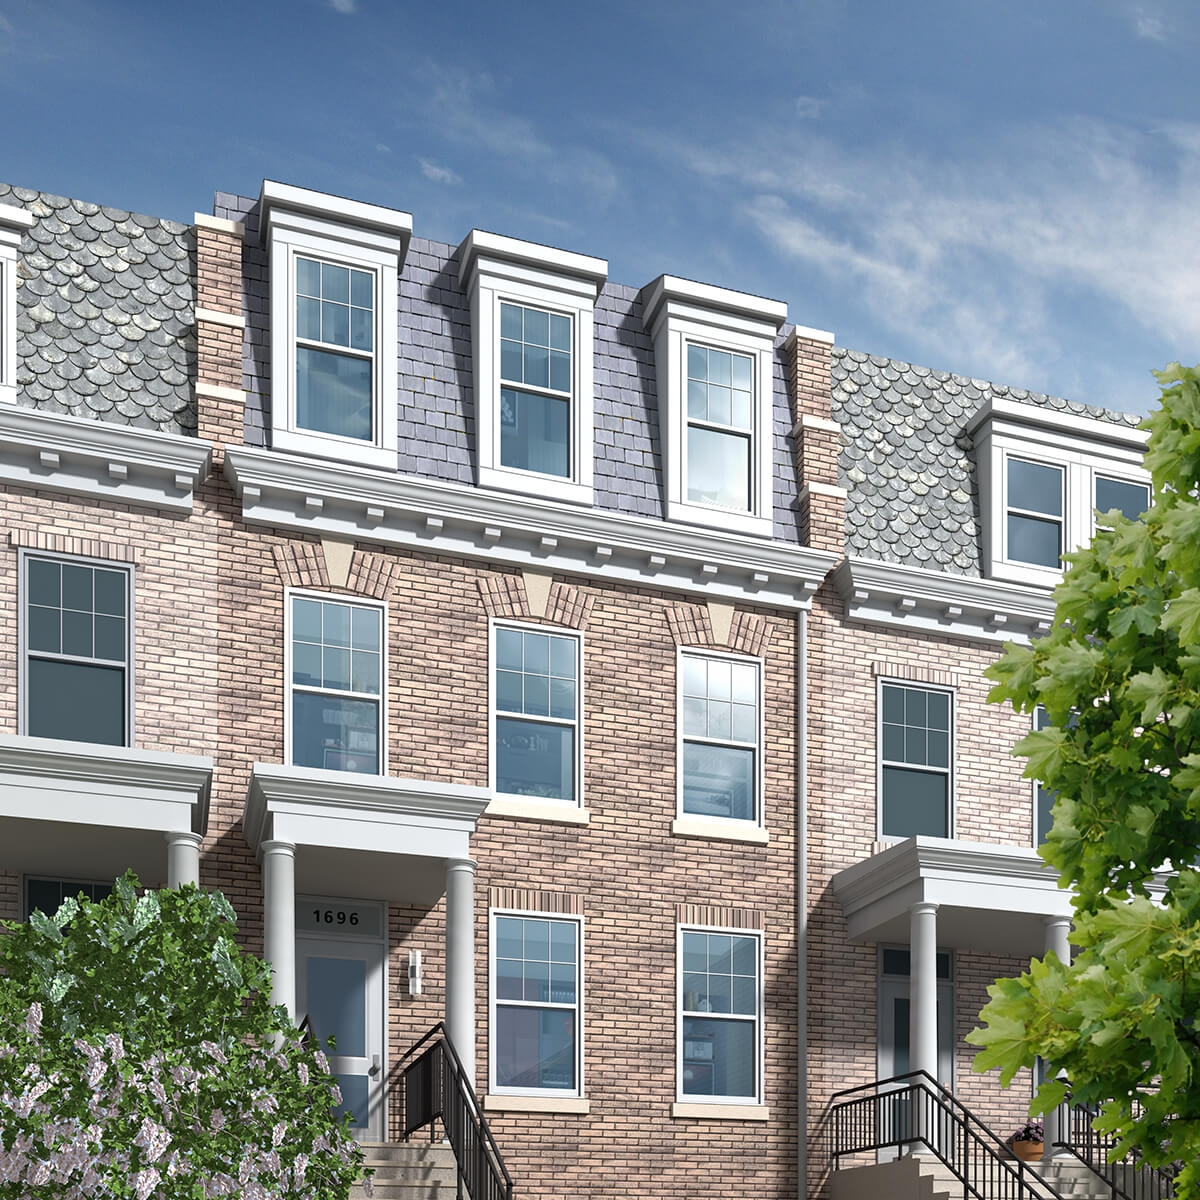 1696 Lanier Place NW - 4 Units - SOLD 2014